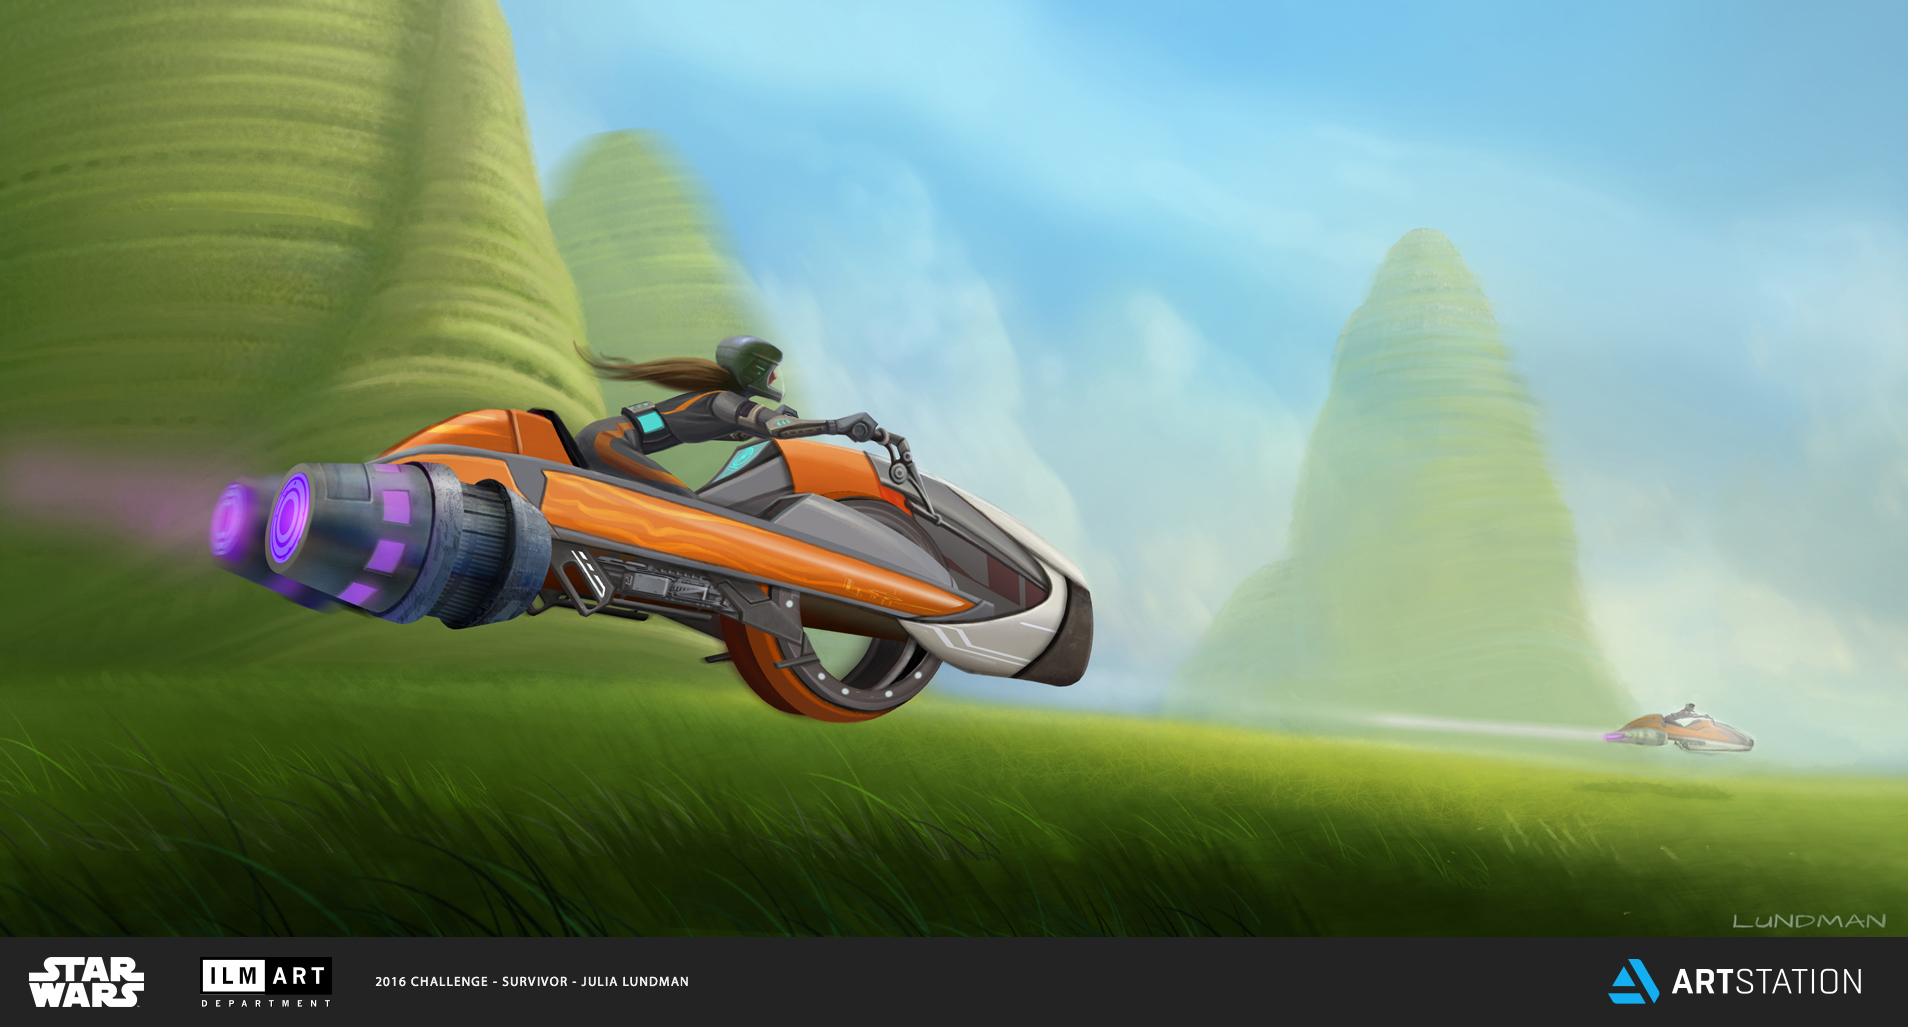 KEYFRAME 4: TEENAGED LEIA ORGANA WAS OFTEN SEEN RACING THROUGH THE PETRIFIED KILLIK MOUNDS ON THE GRASS PLANES ON ALDERAAN. SHE SHOWED UNUSUAL MECHANICAL ENGINEERING ABILITIES AT A YOUNG AGE, SOUPING UP AND CUSTOMIZING THE SPEEDER BIKE HER ADOPTED FATHER, BAIL ORGANA, GAVE TO HER WHEN SHE TURNED TWELVE.